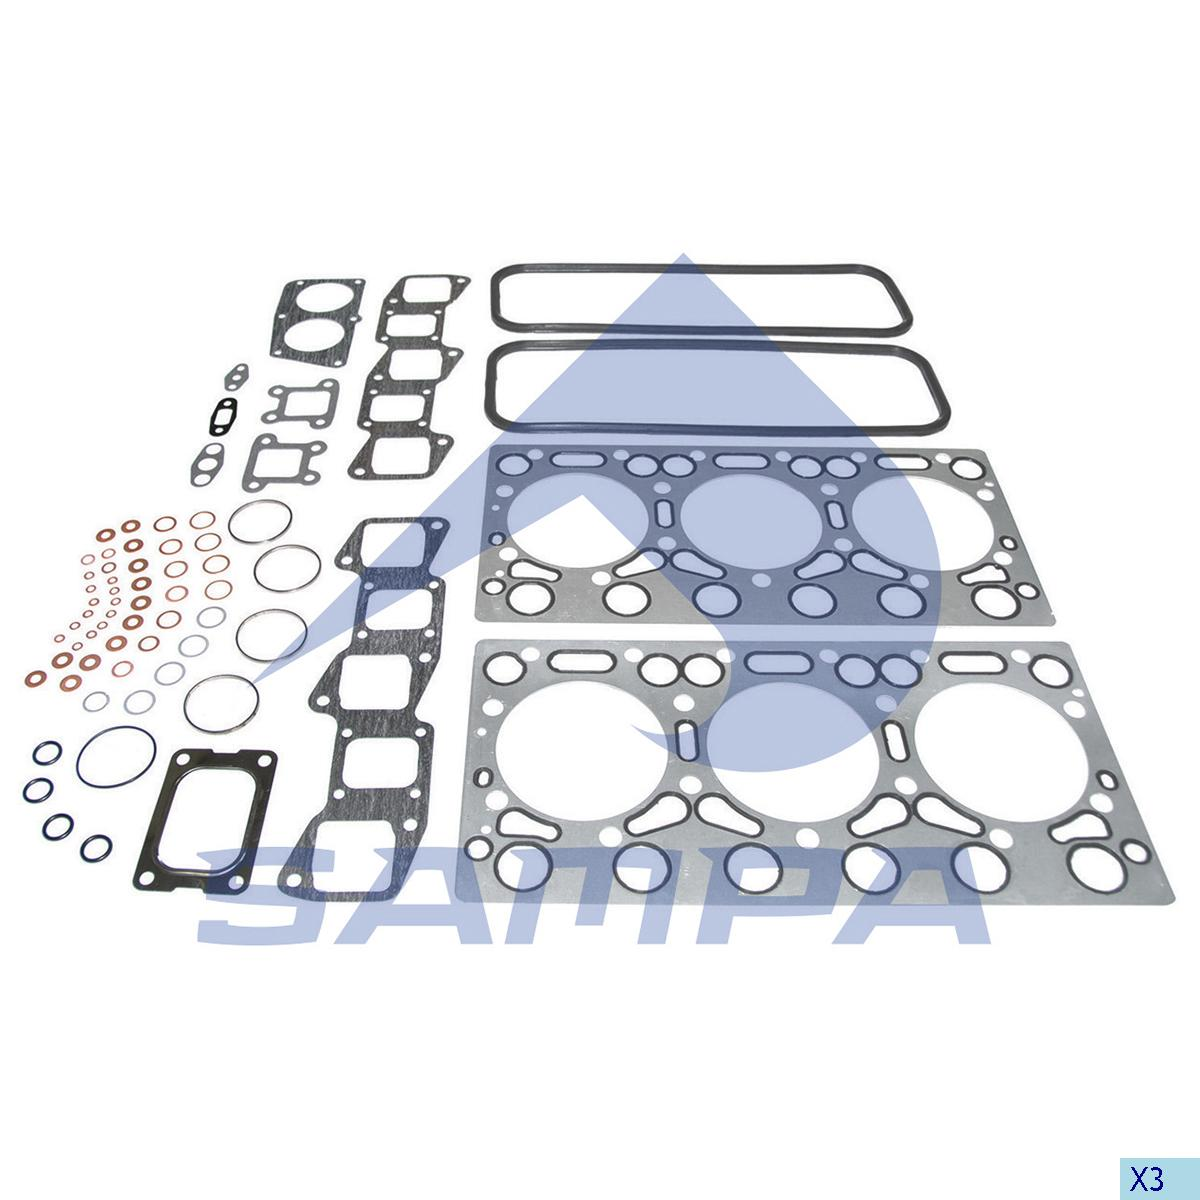 Gasket Kit, Cylinder Block, R.V.I., Engine